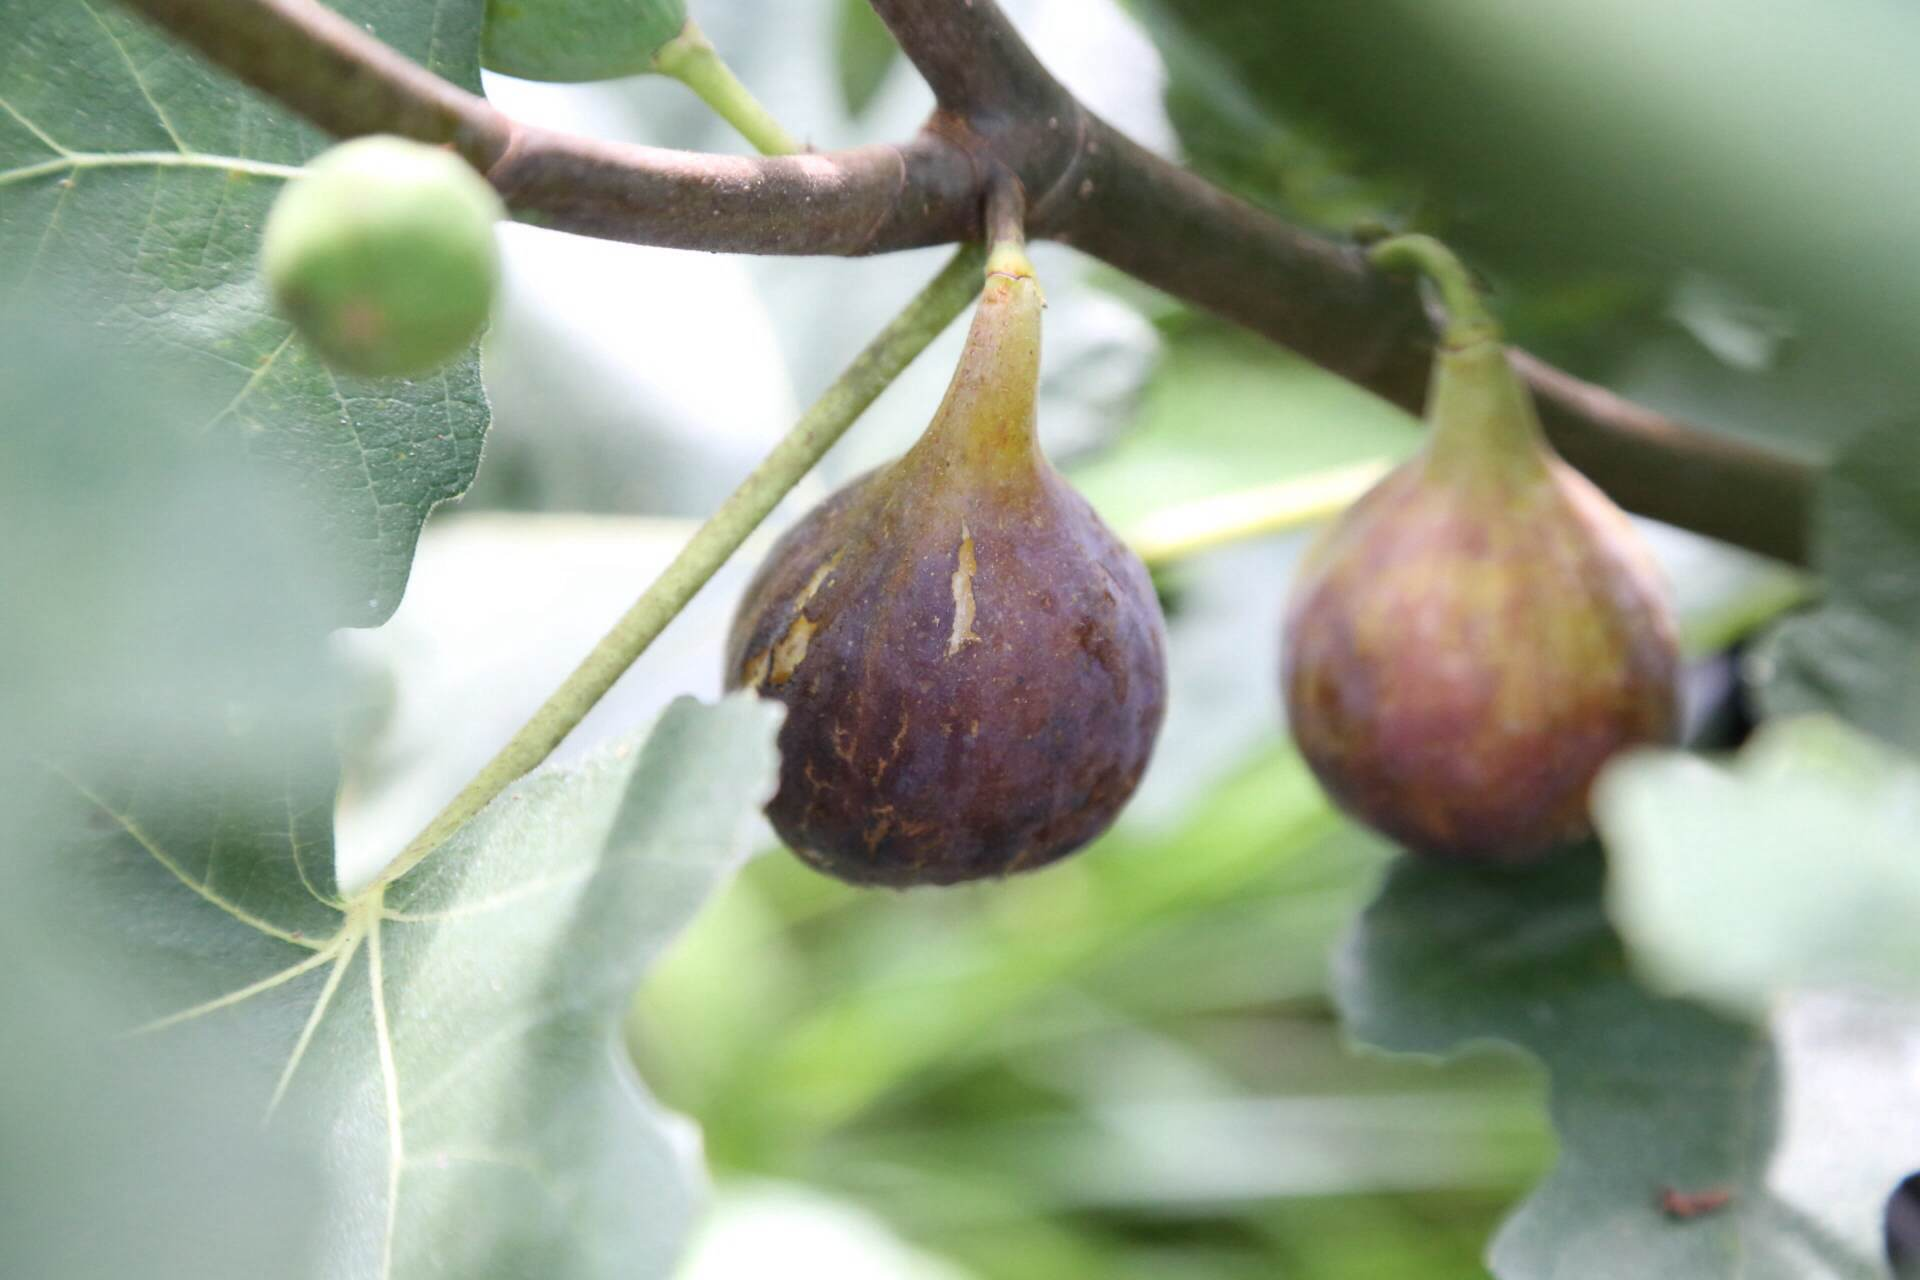 A nice ripe fig. Some varieties will develop some cracks in the skin as part of the normal ripening process.